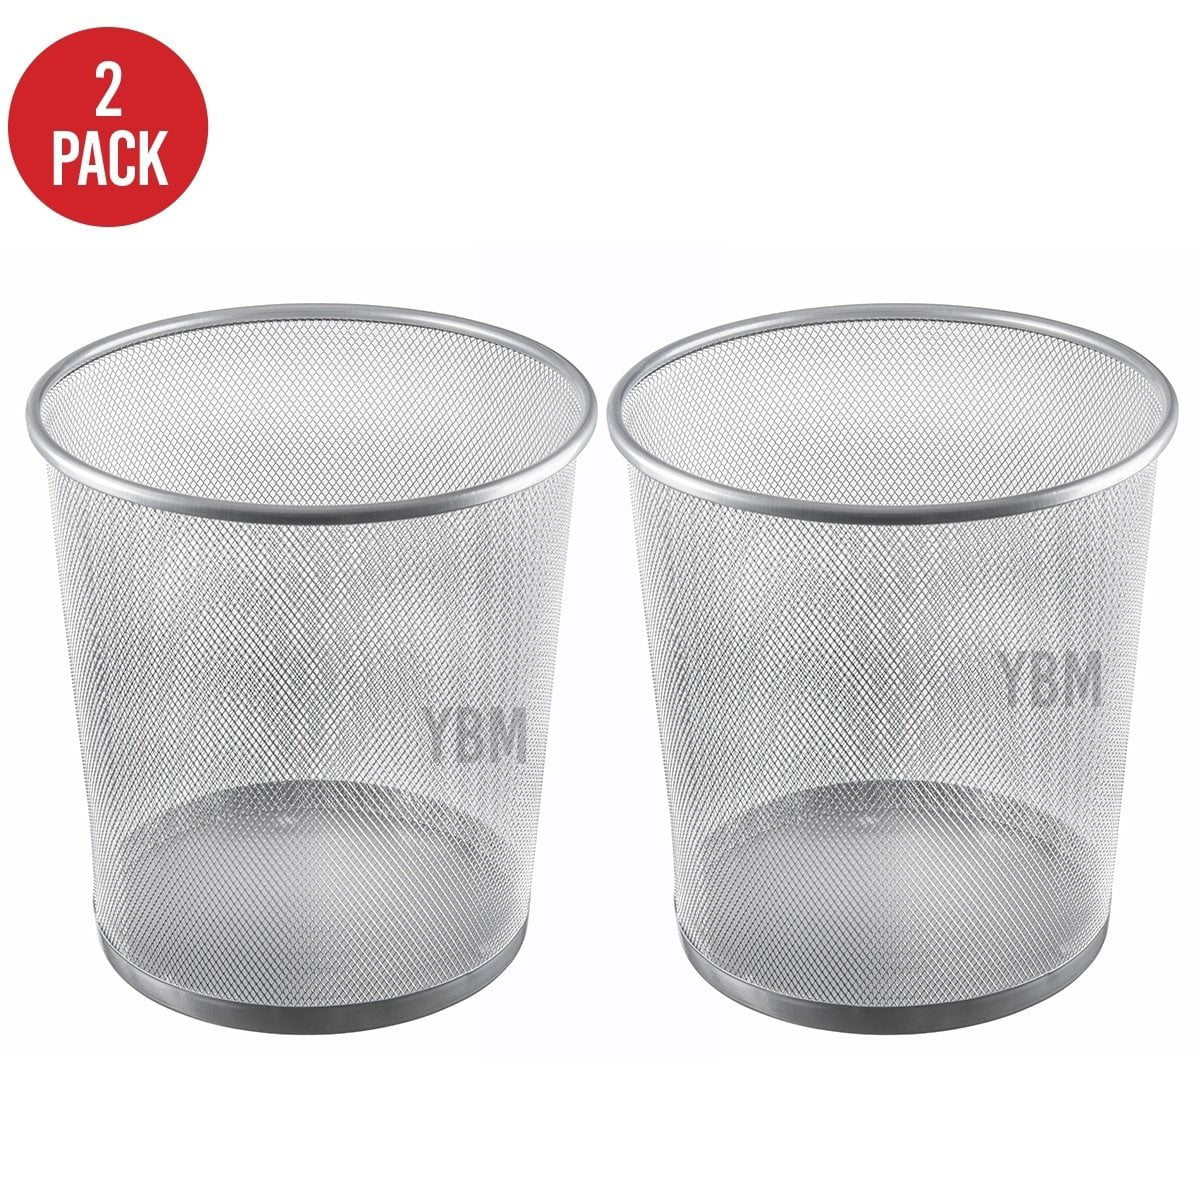 Ybmhome Steel Mesh Round Open Top Waste Basket Bin Trash Can Sold per 6 Pieces